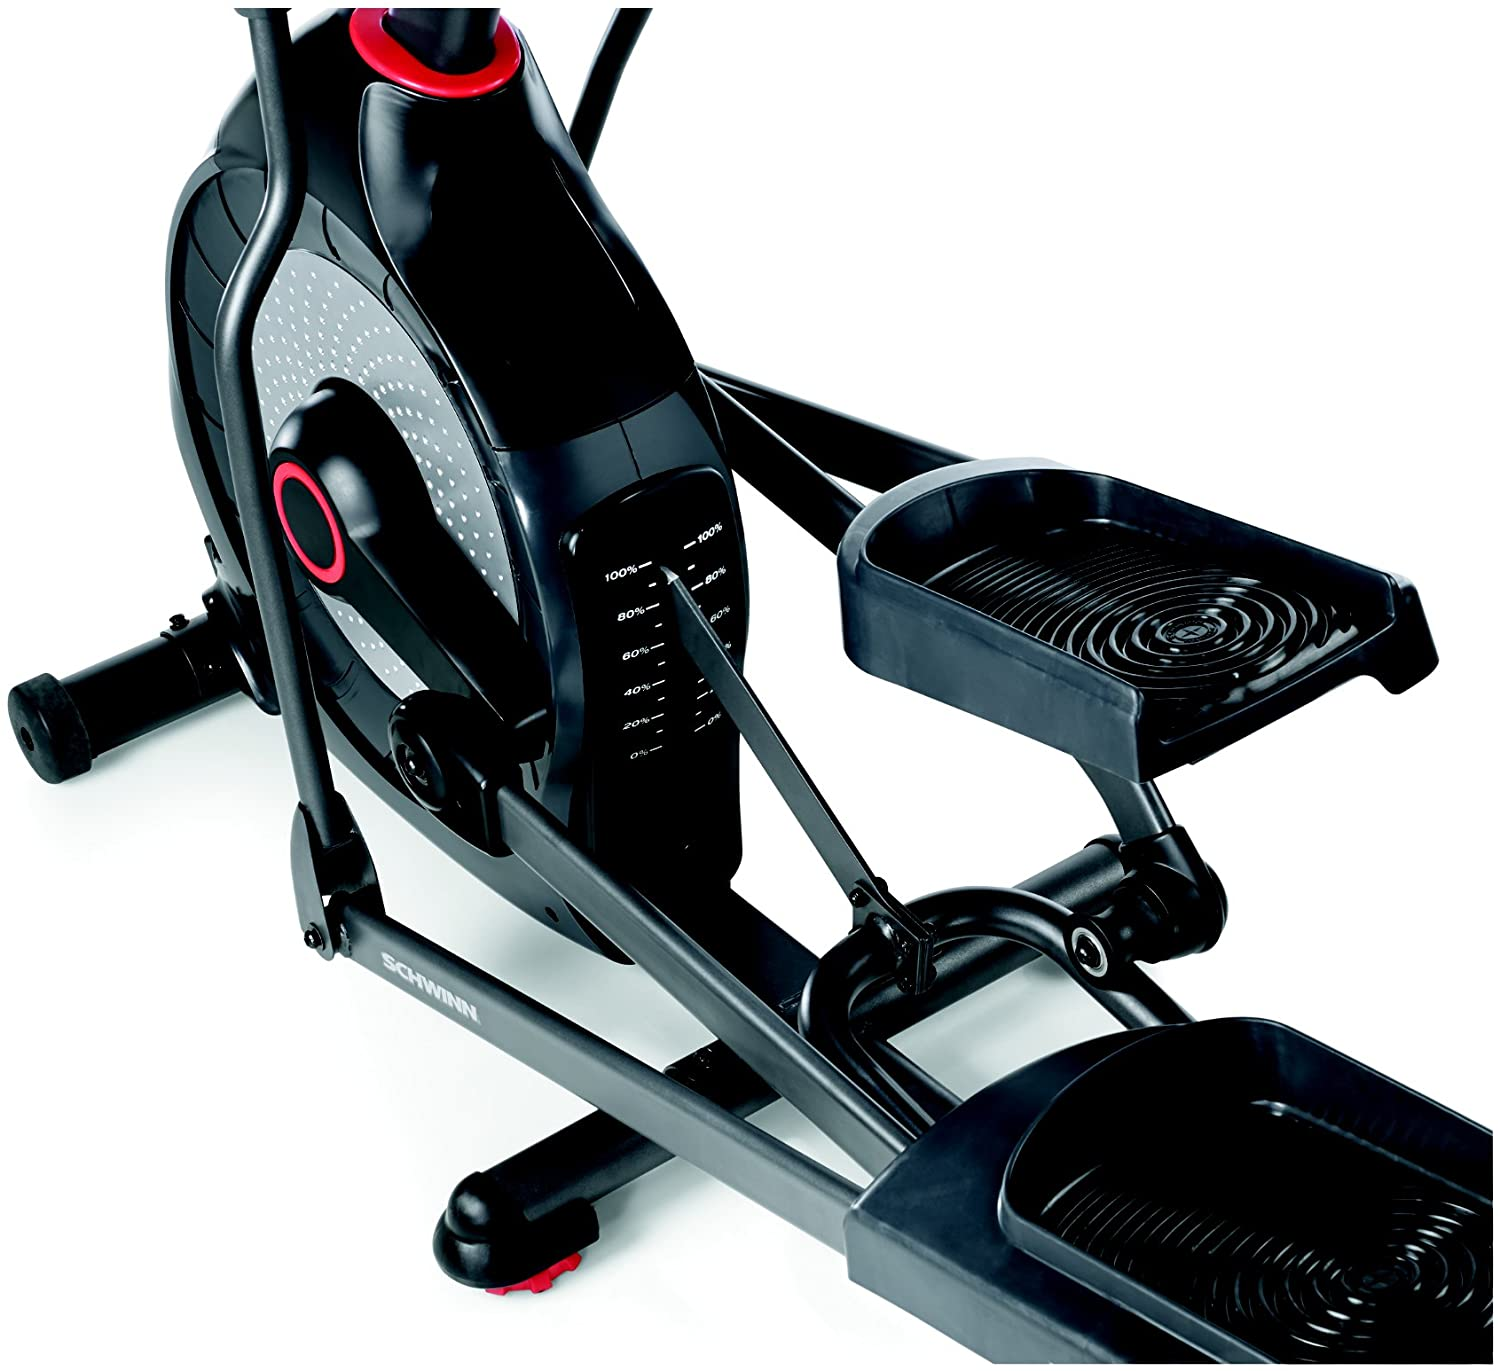 Schwinn vs NordicTrack Elliptical